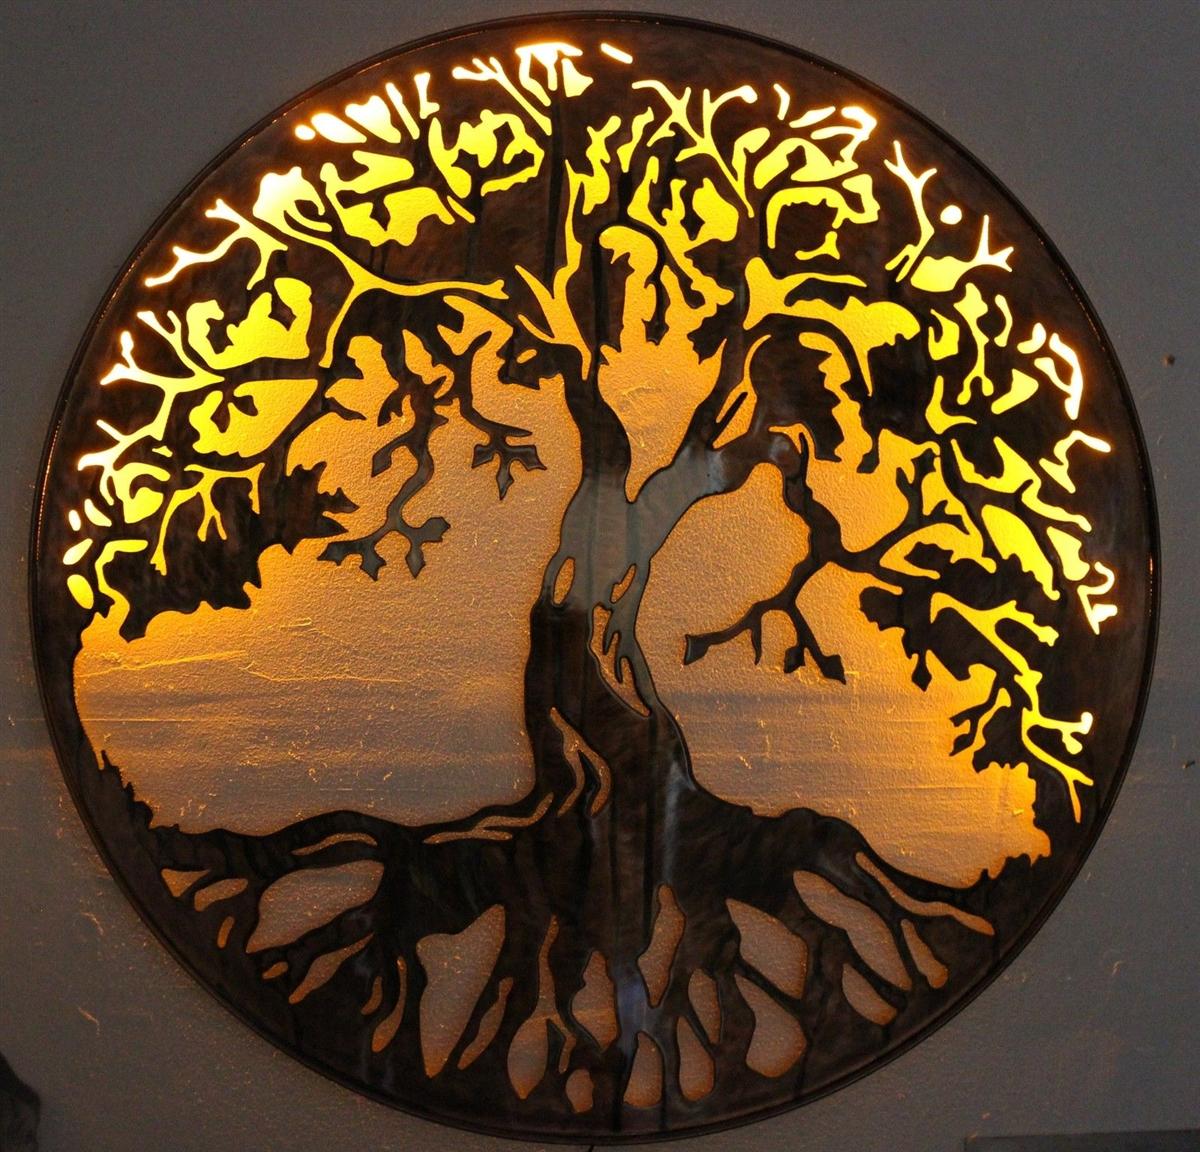 Tree of life metal wall art 24 with led lights by hgmw aloadofball